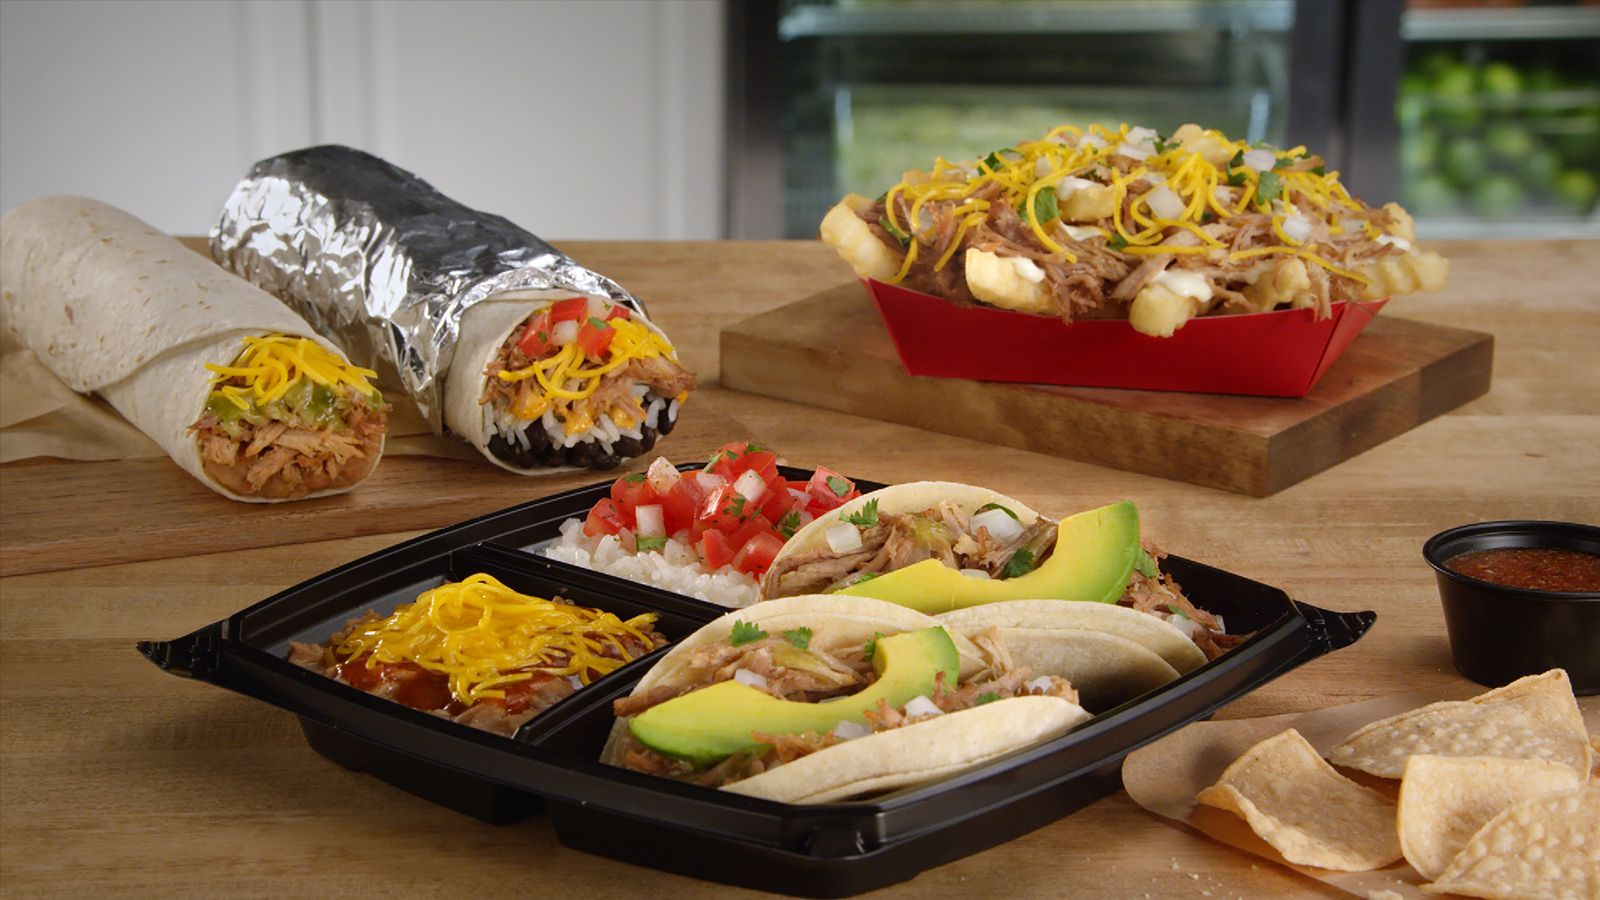 Del Taco Tops the Competition With the Return of Fan-Favorite Carnitas for a Limited Time